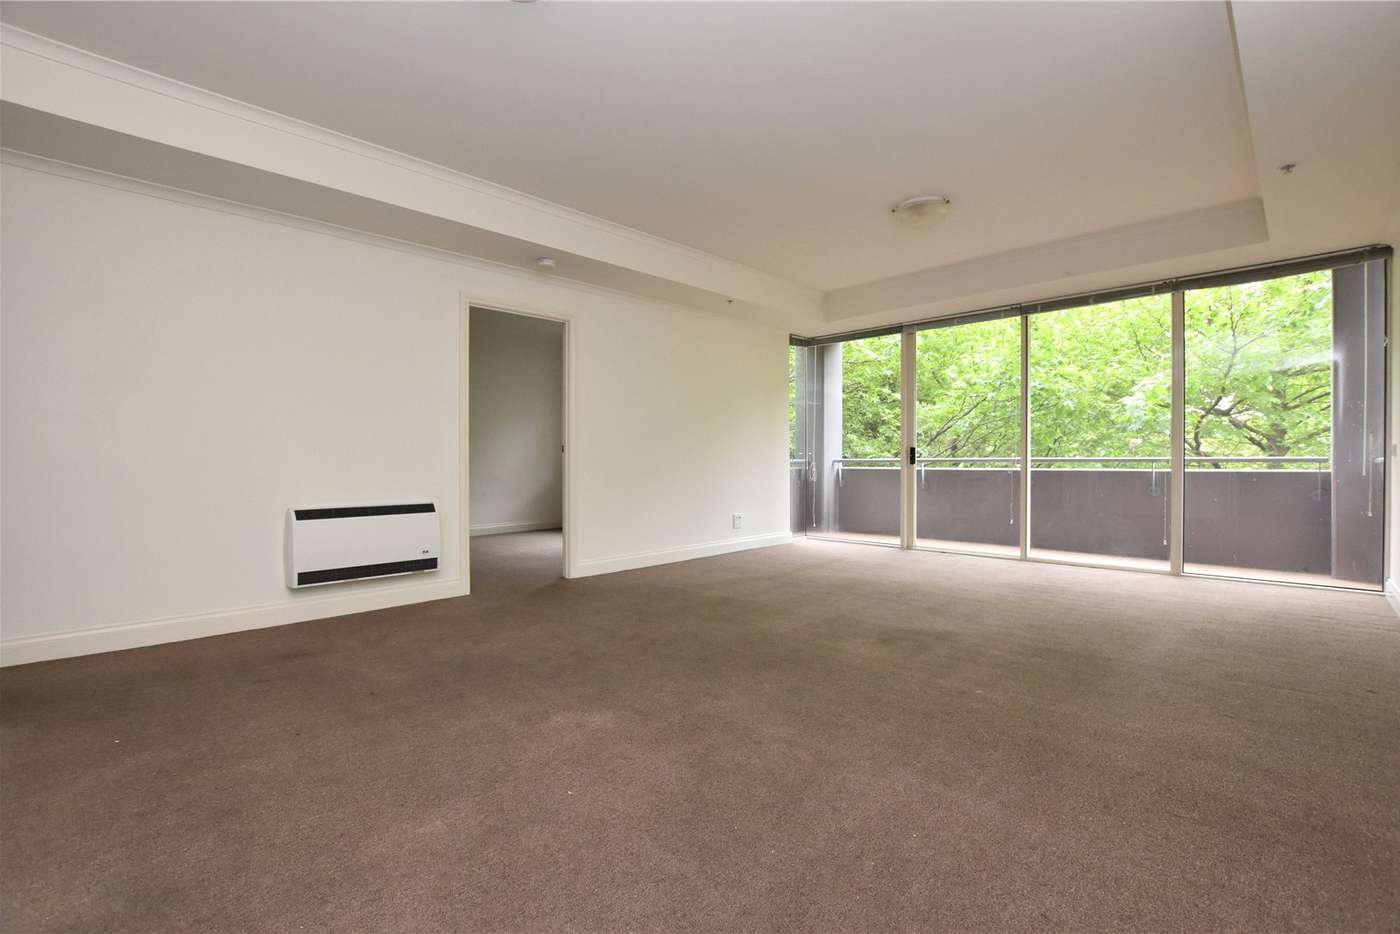 Main view of Homely apartment listing, 26/632 St Kilda Road, Melbourne VIC 3004